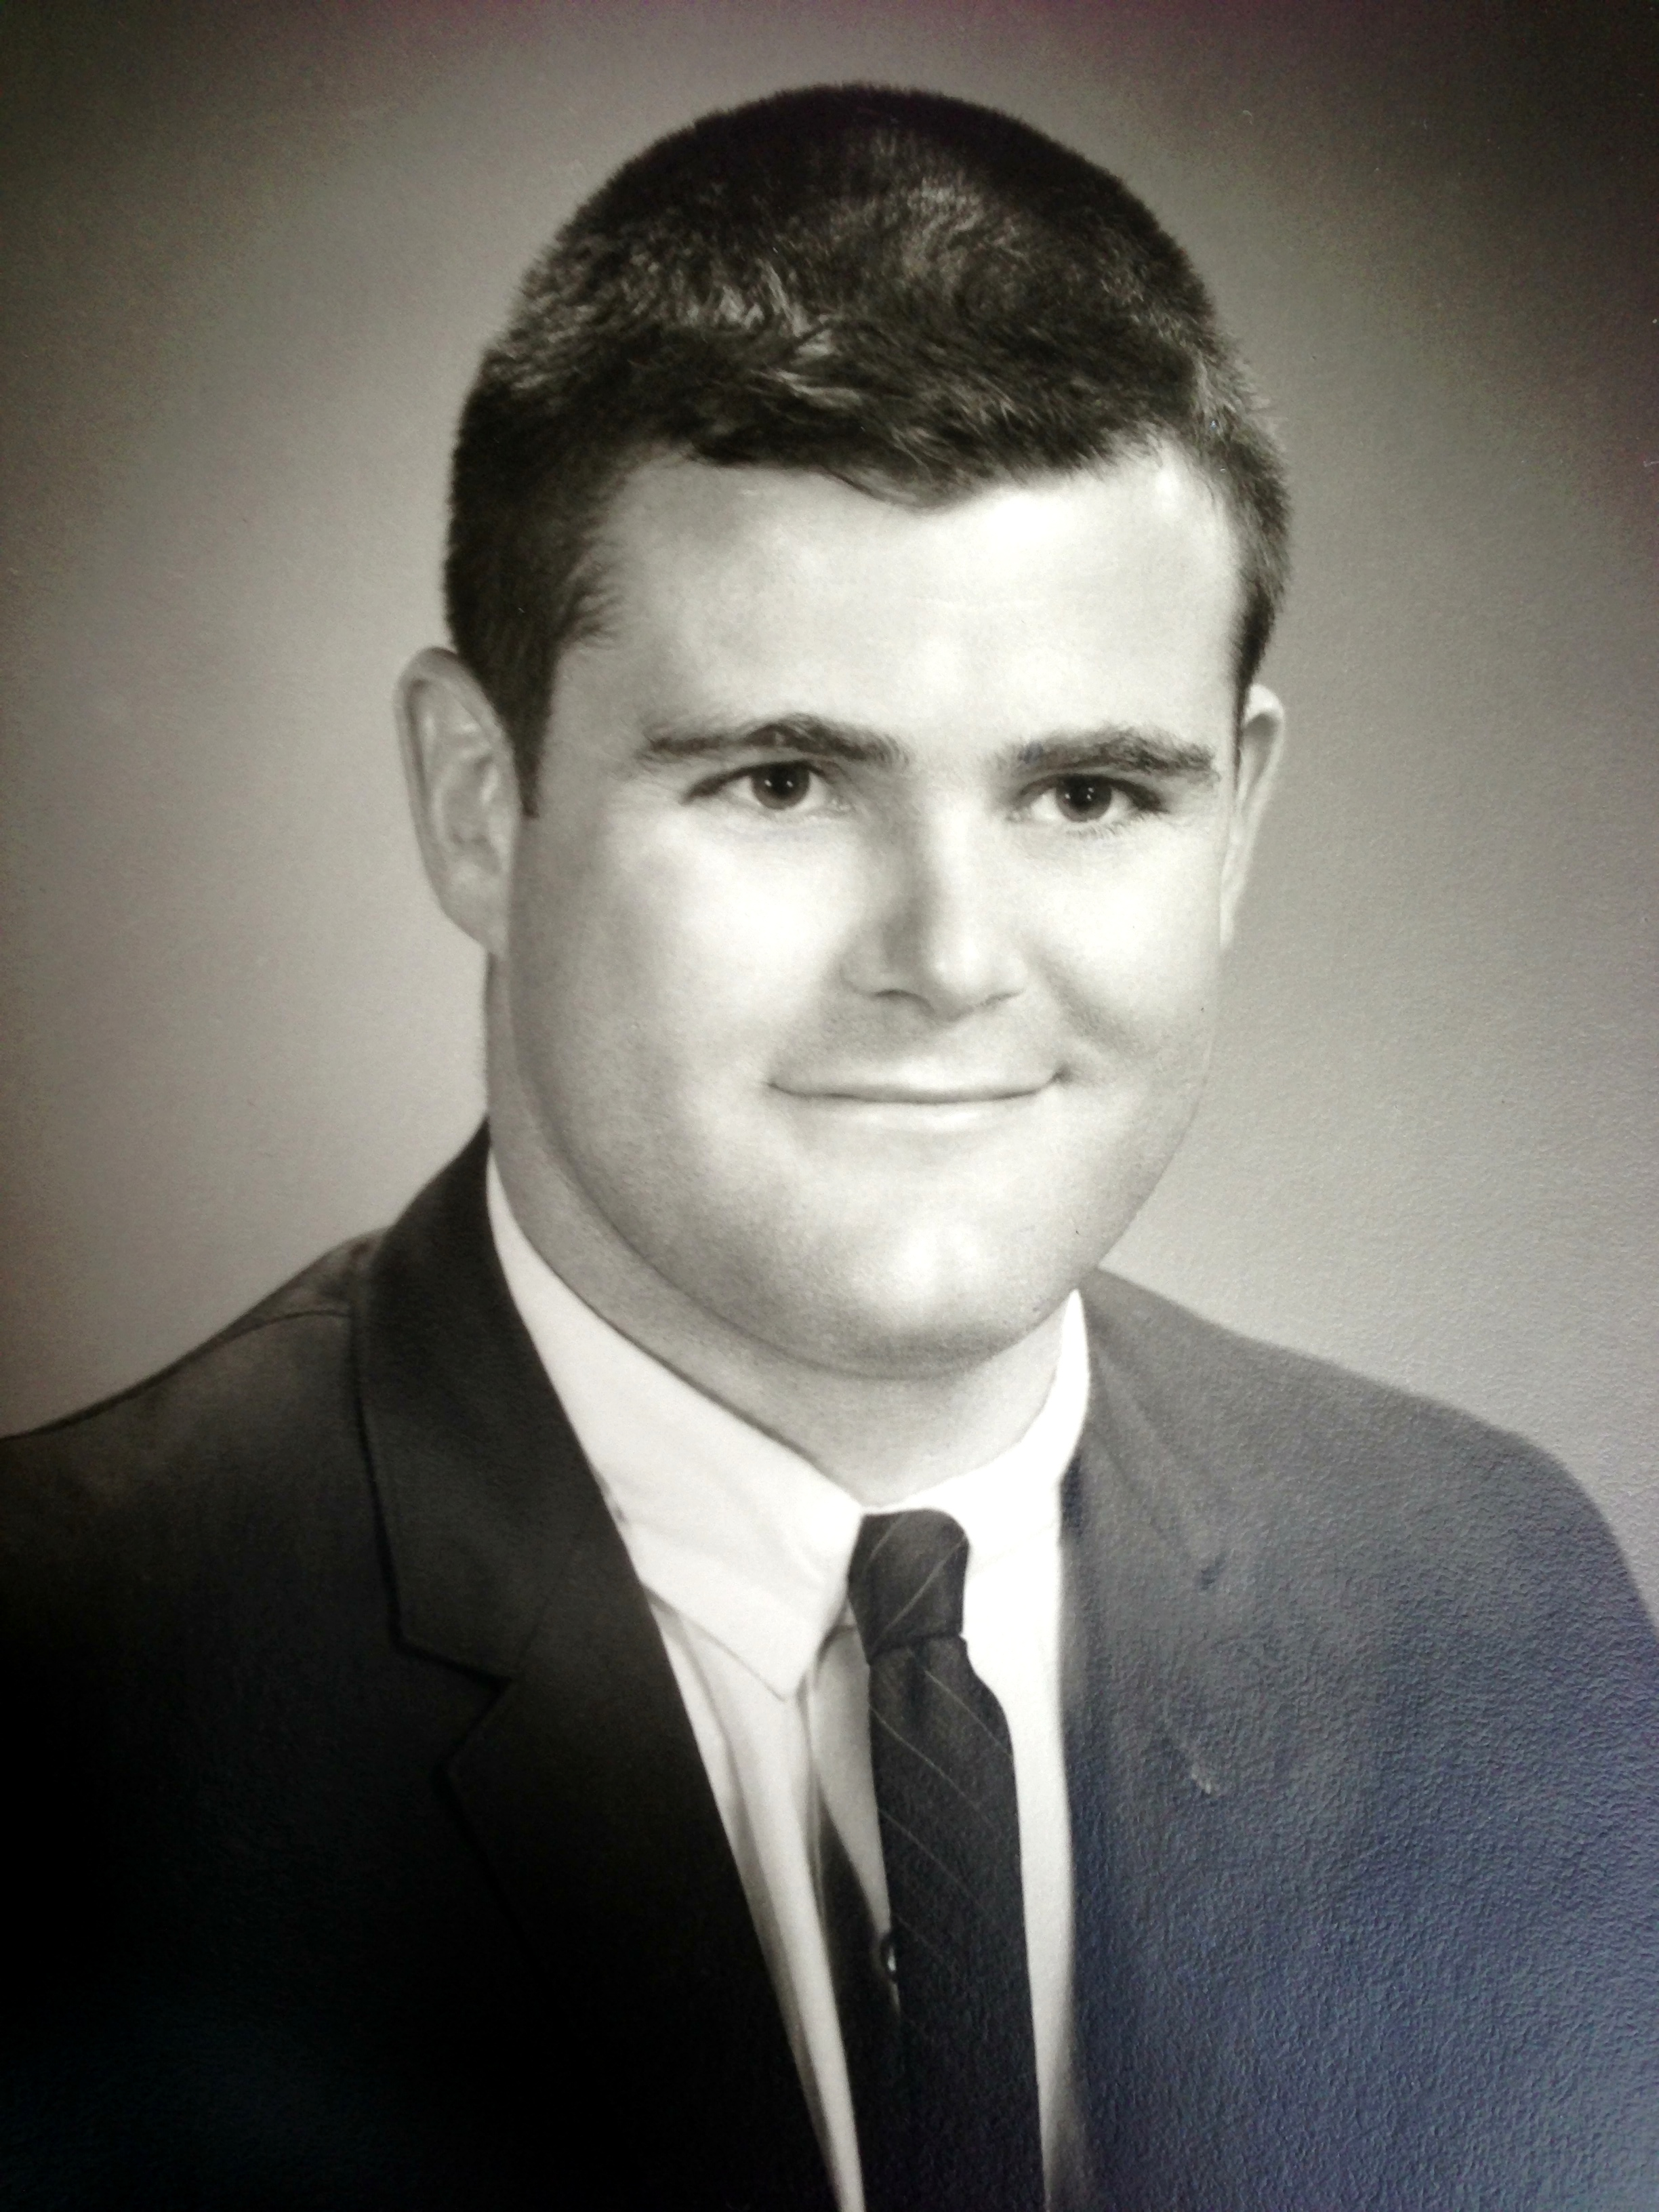 Ted Ludwig, Young Medical Student. This was taken around 1963 0r '64.